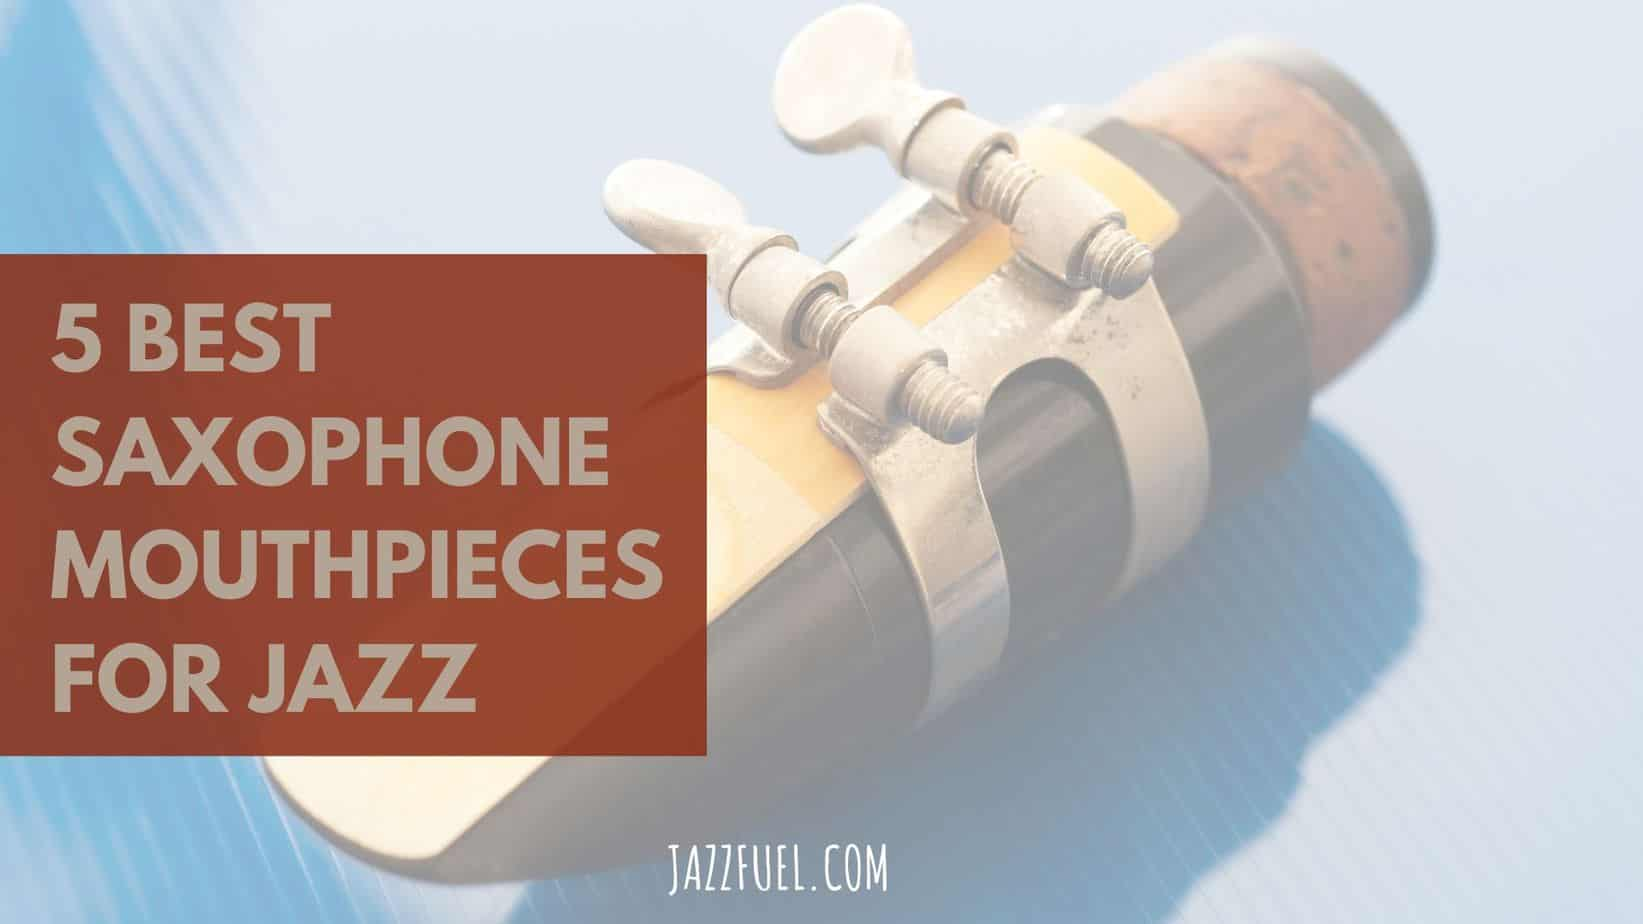 Best saxophone mouthpieces for jazz